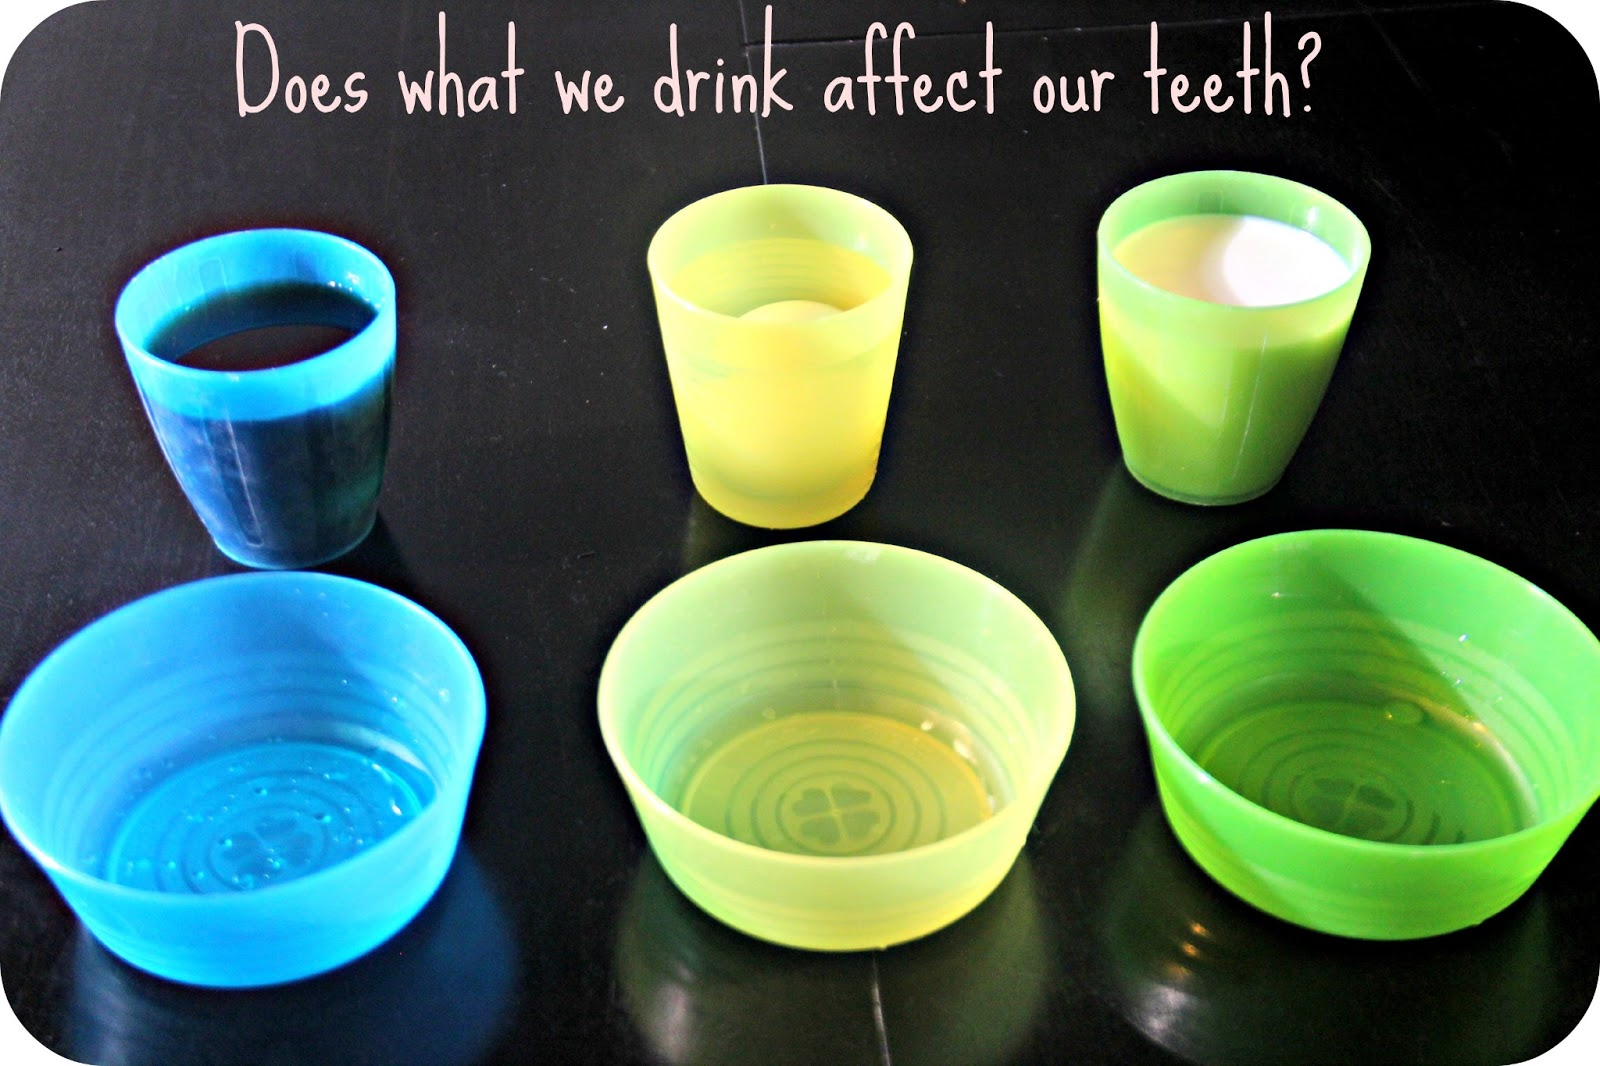 Blue Skies Ahead Do Drinks Affect Our Teeth A Science